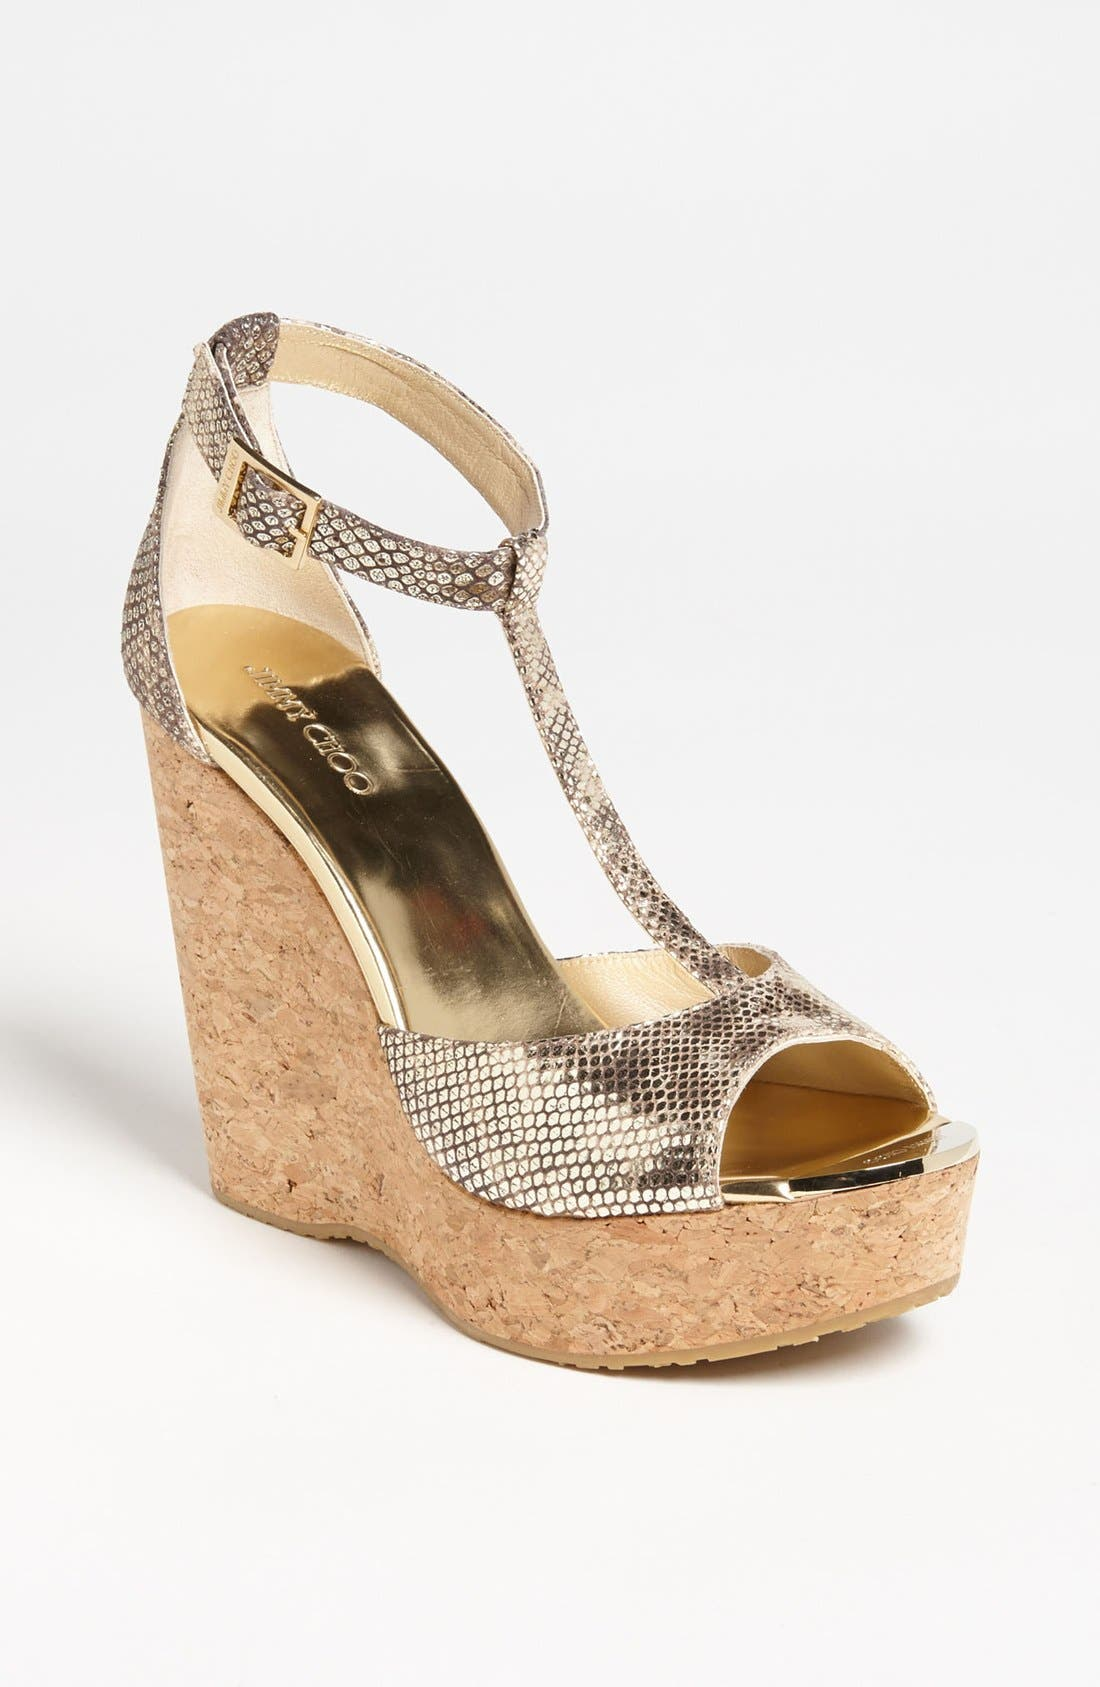 Main Image - Jimmy Choo 'Pela' Cork Wedge Sandal